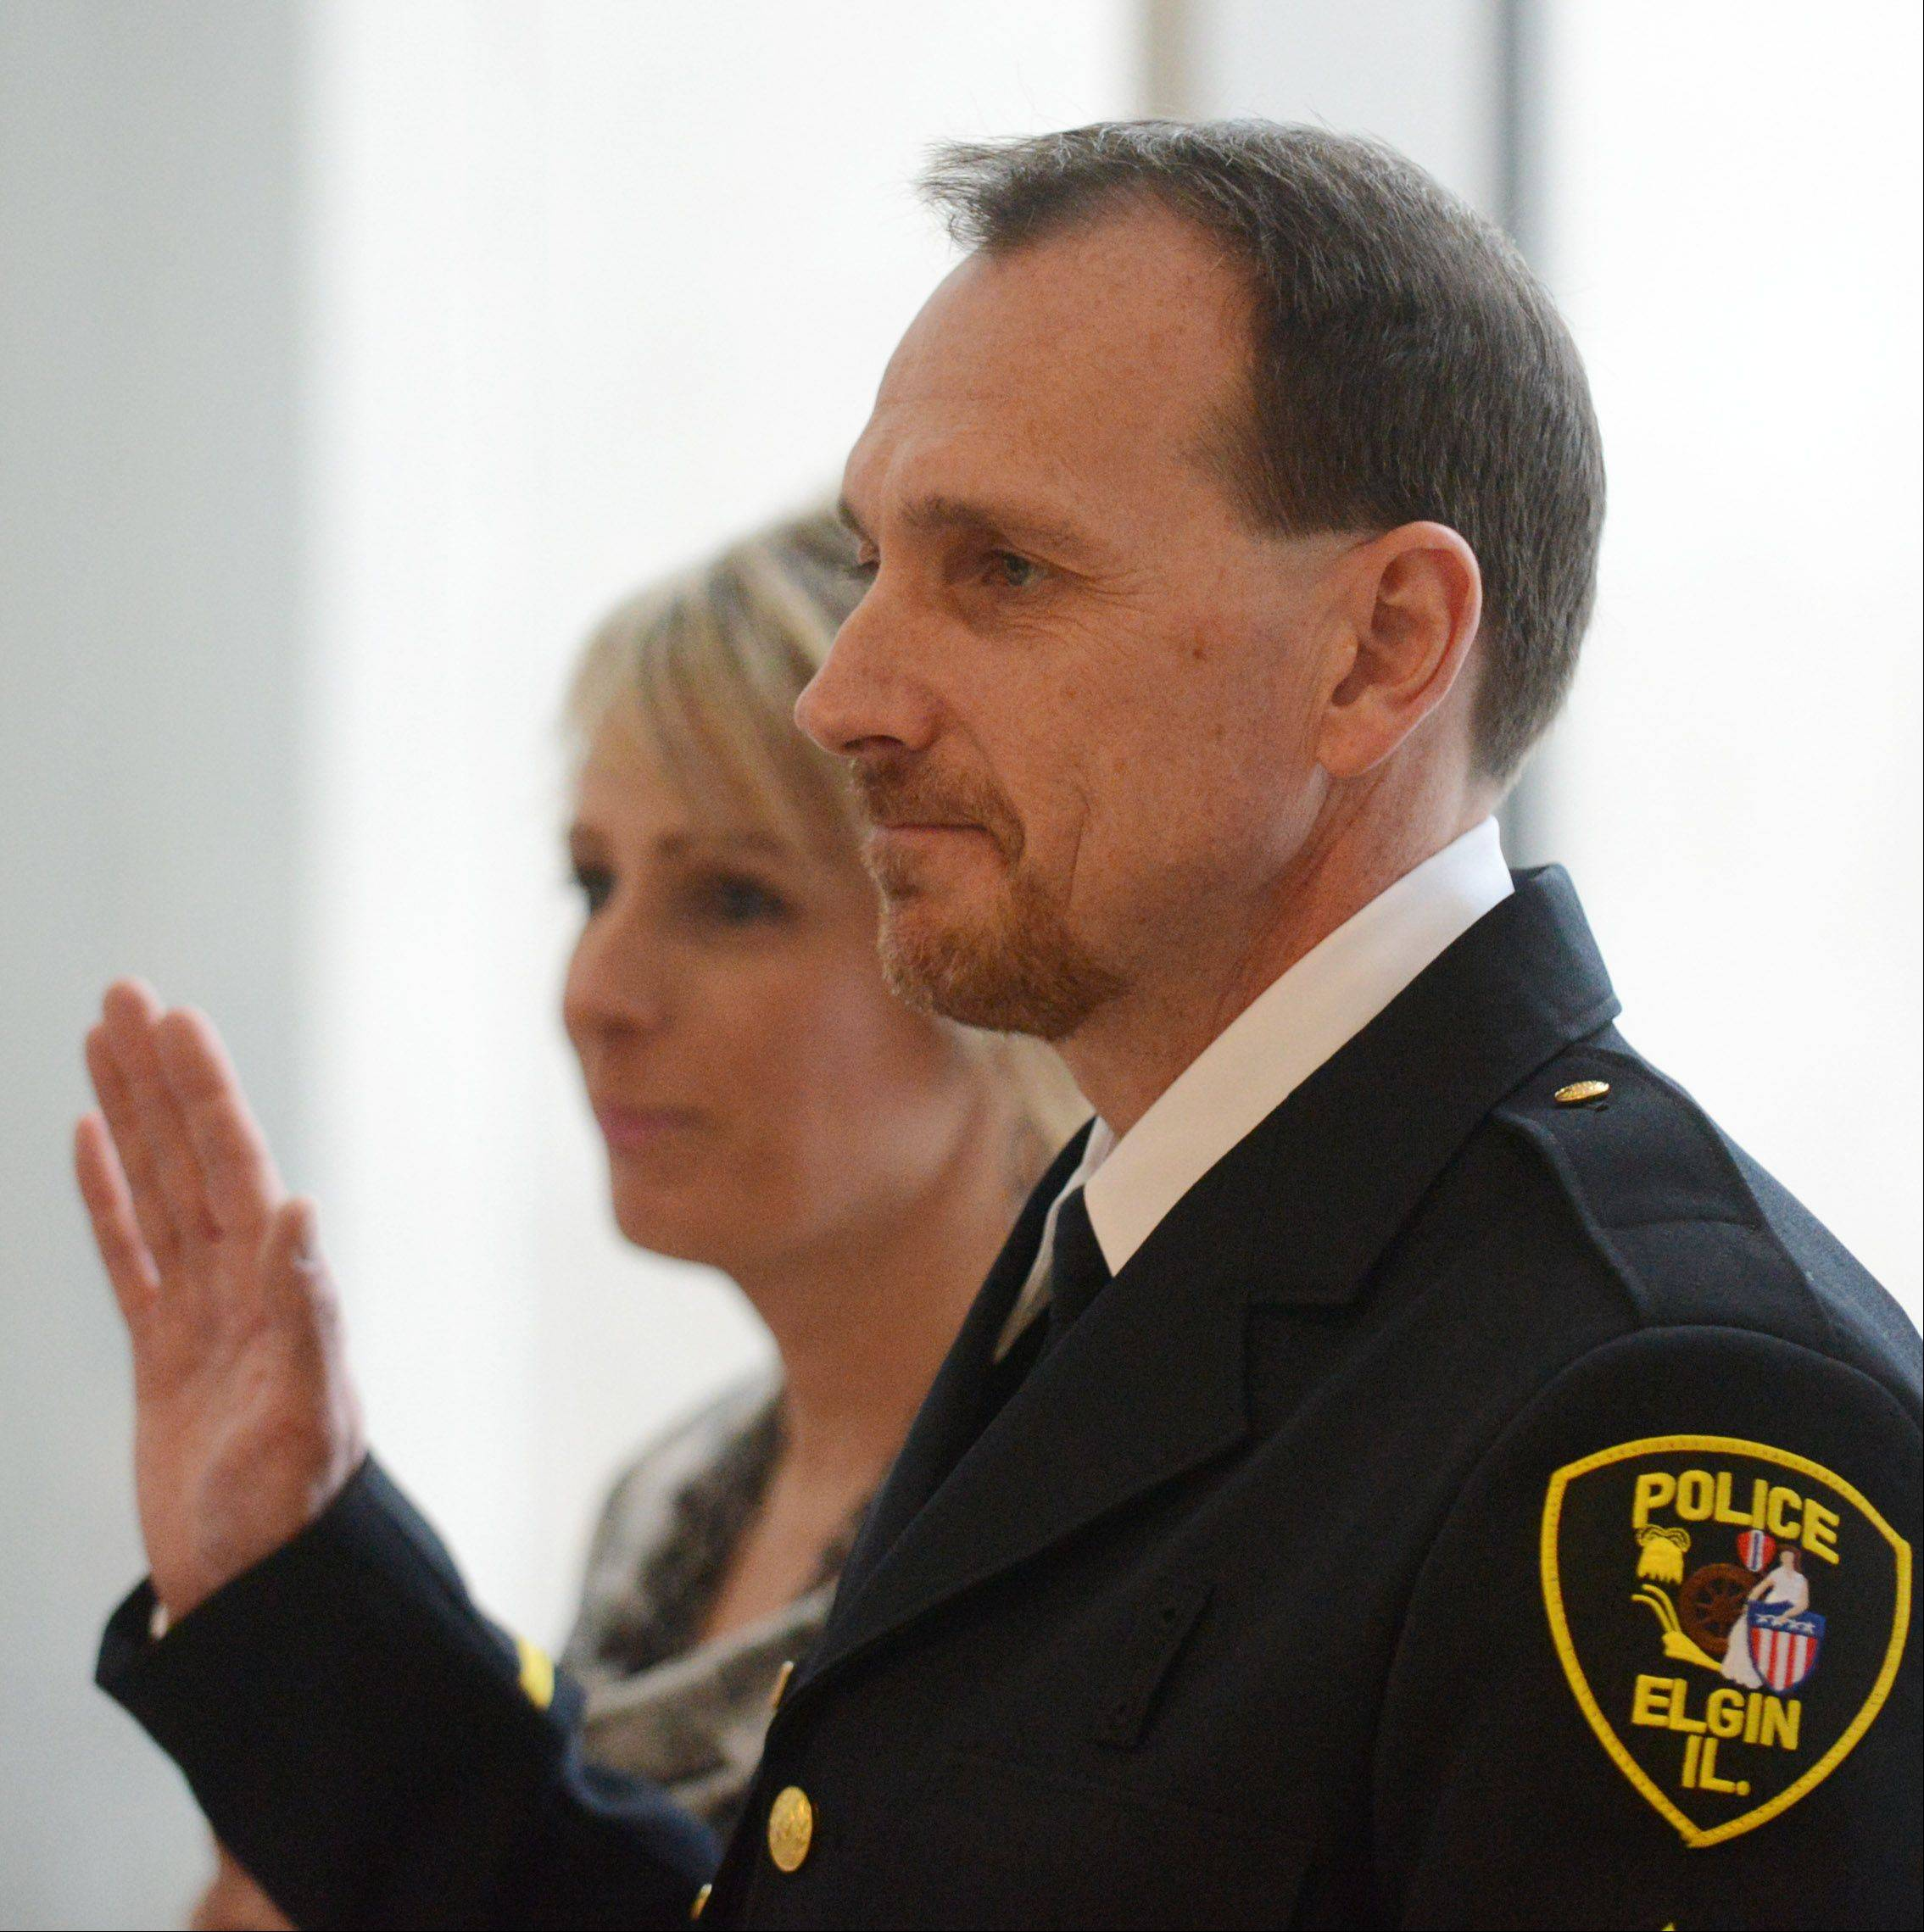 McCorkle takes the oath during his promotion ceremony Friday afternoon.